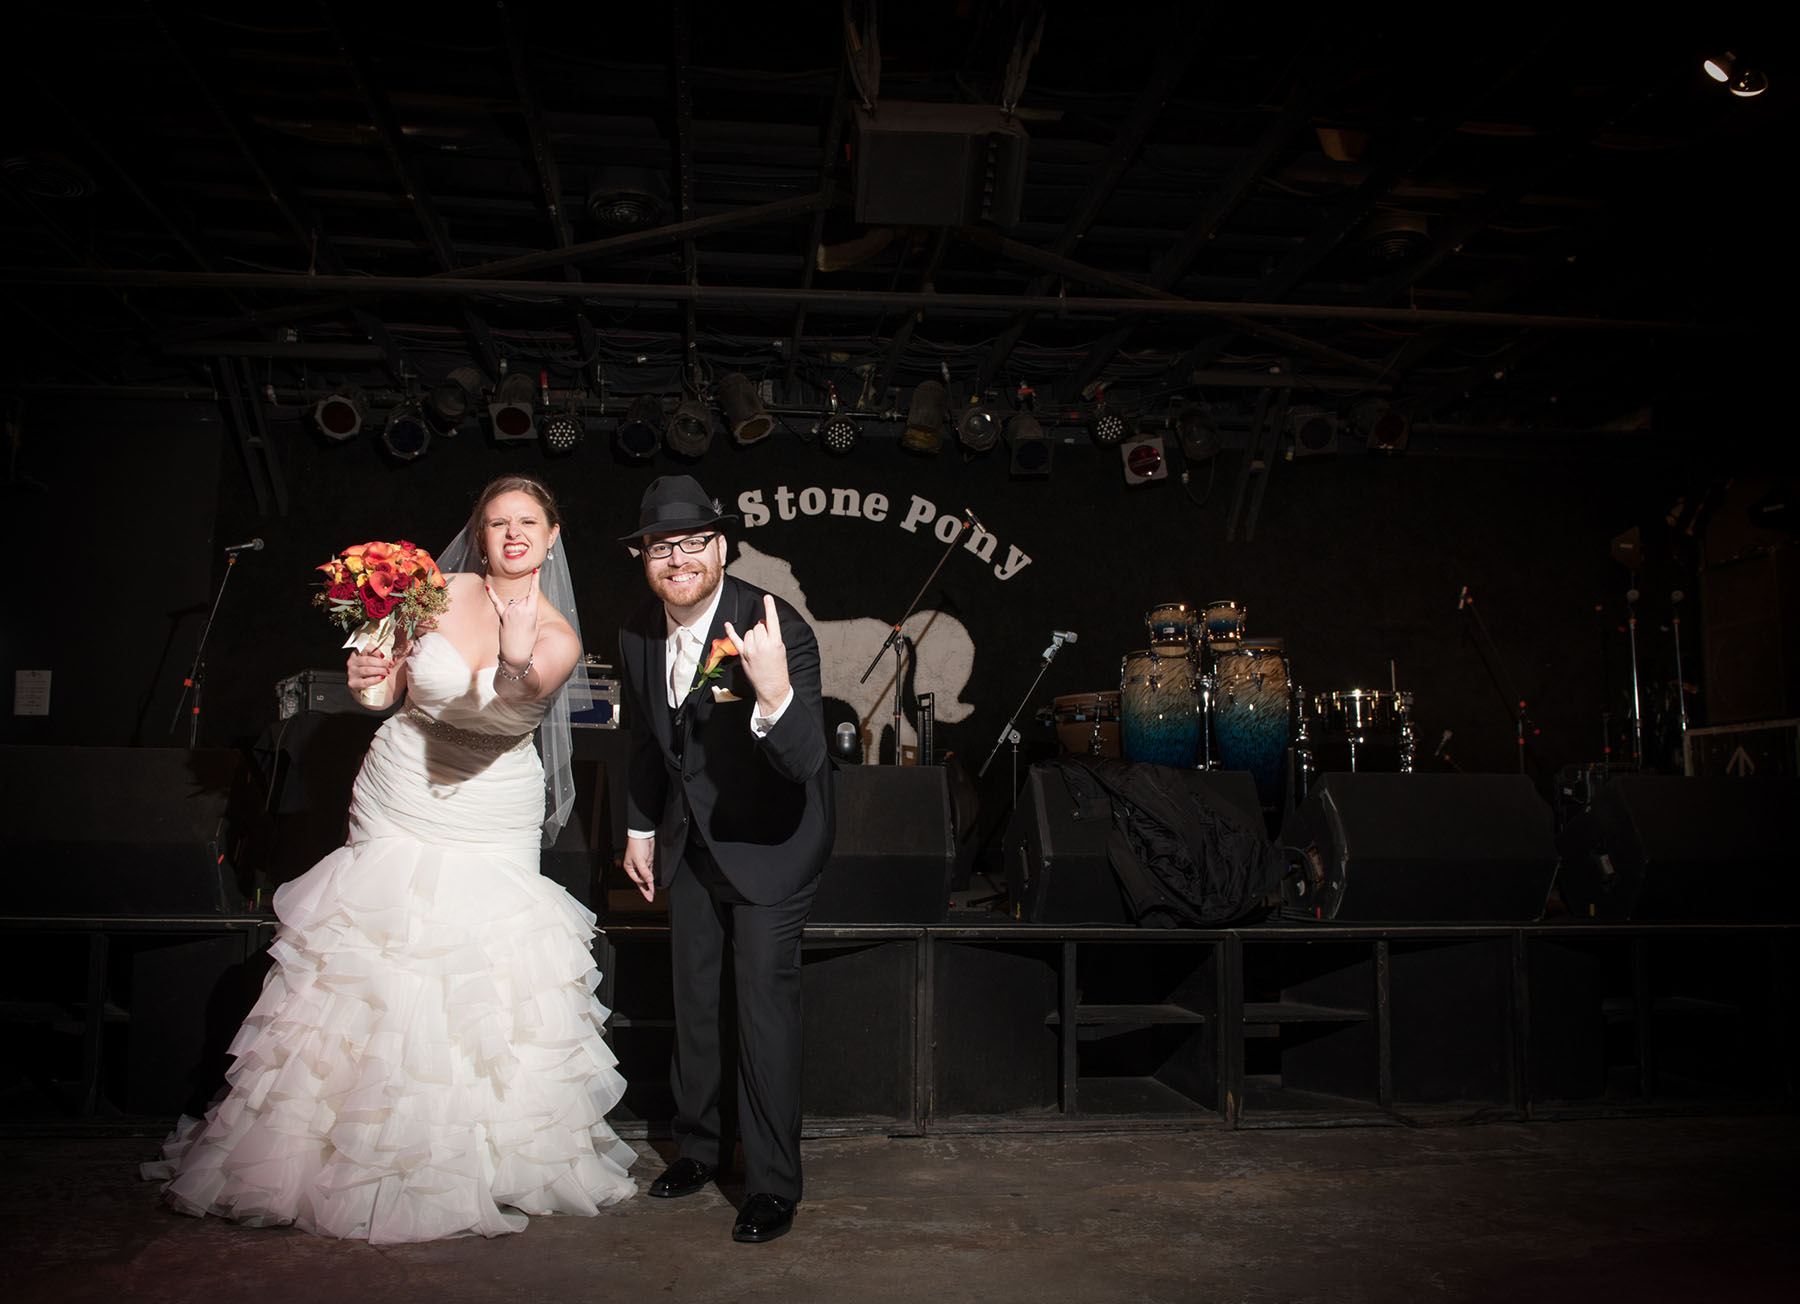 Asbury Park Nj Wedding photography